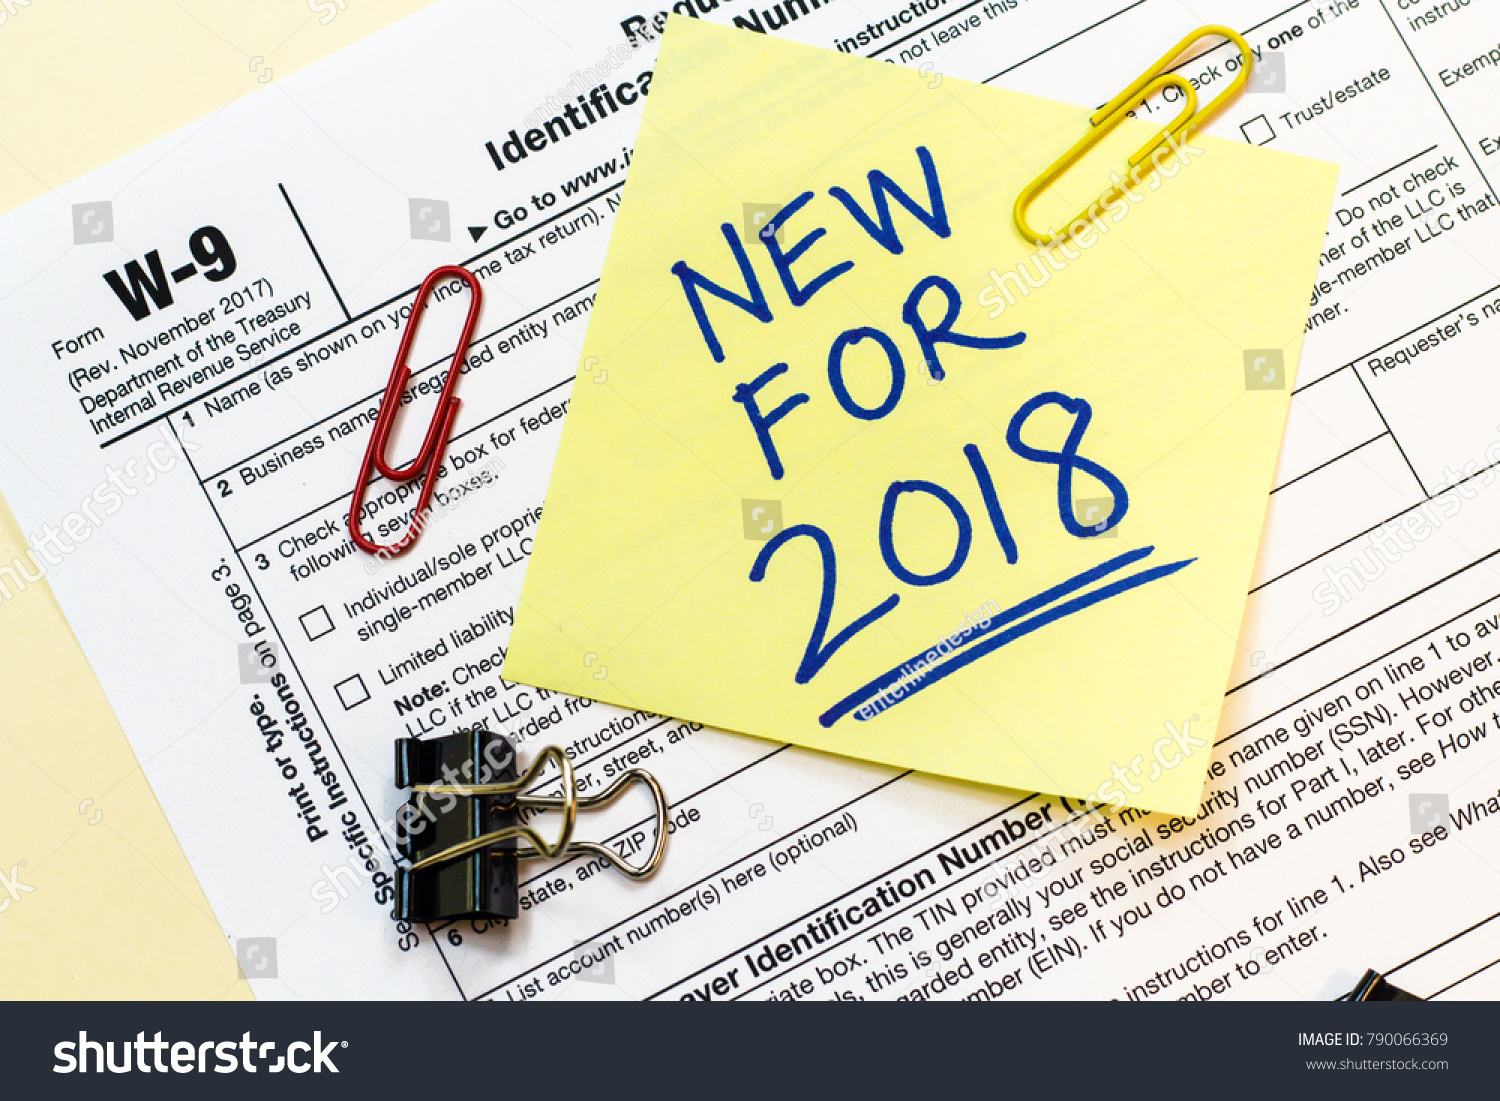 W 9 Tax Form New 2018 Written Stock Photo Edit Now 790066369